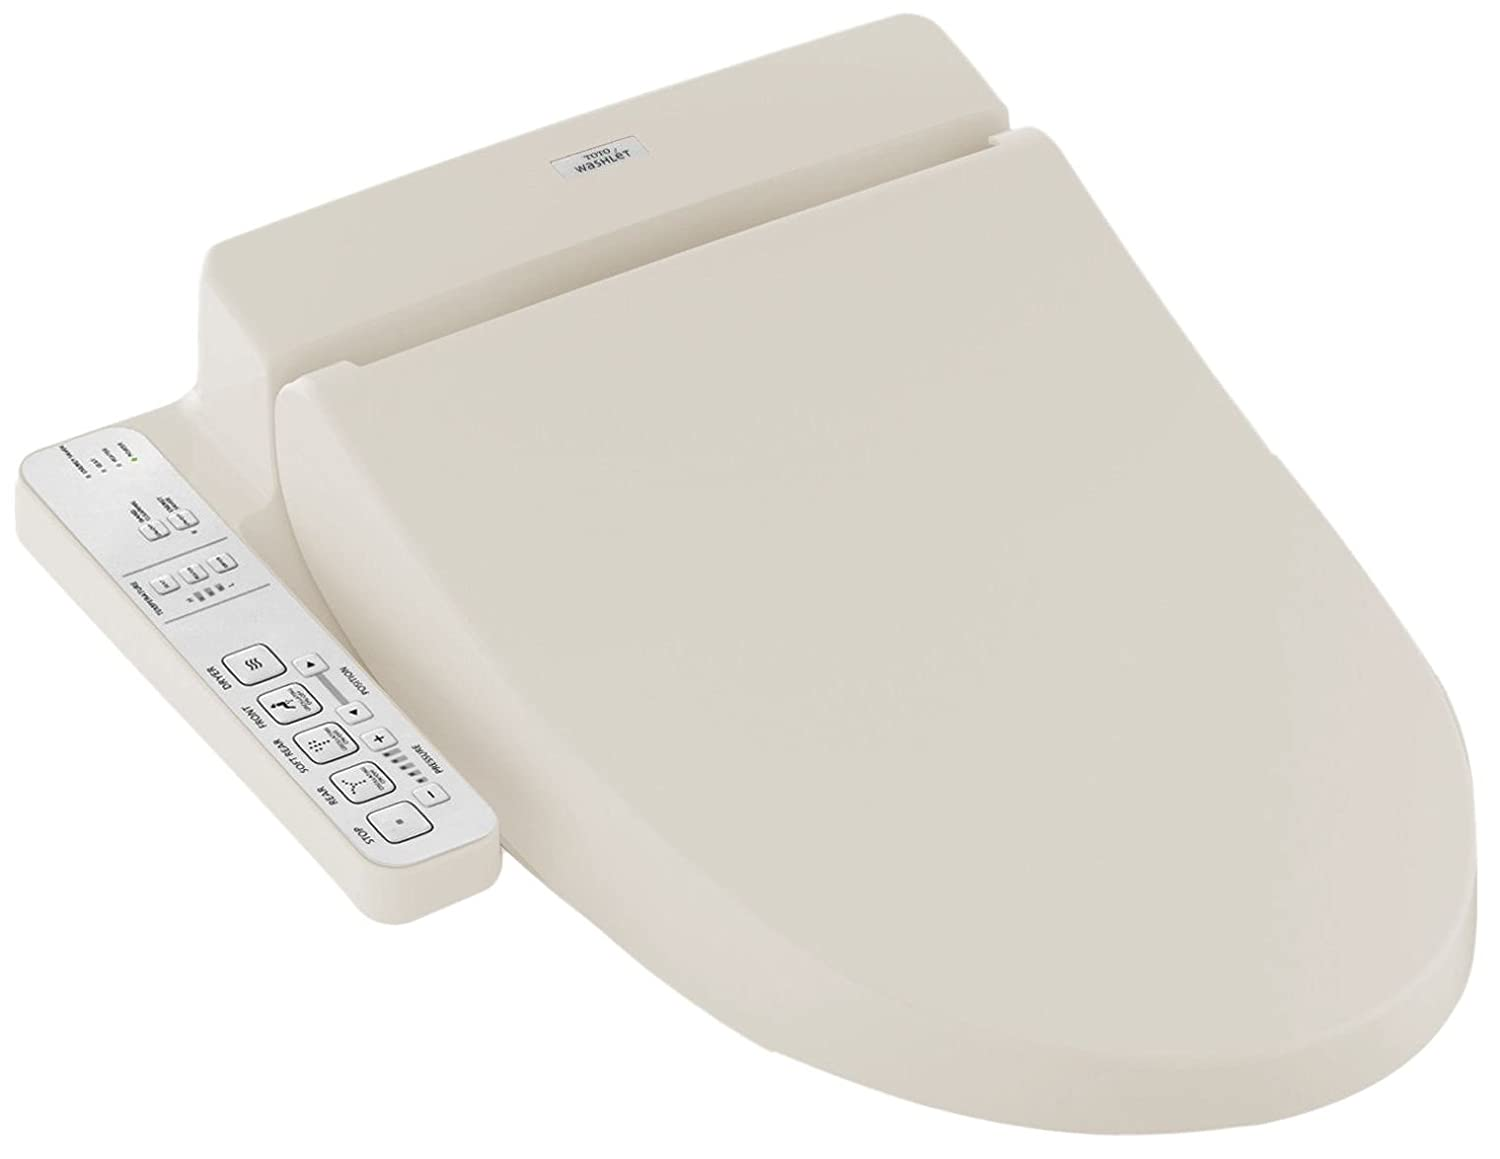 TOTO Washlet C100 Elongated Bidet Toilet Seat with PreMist, Sedona ...